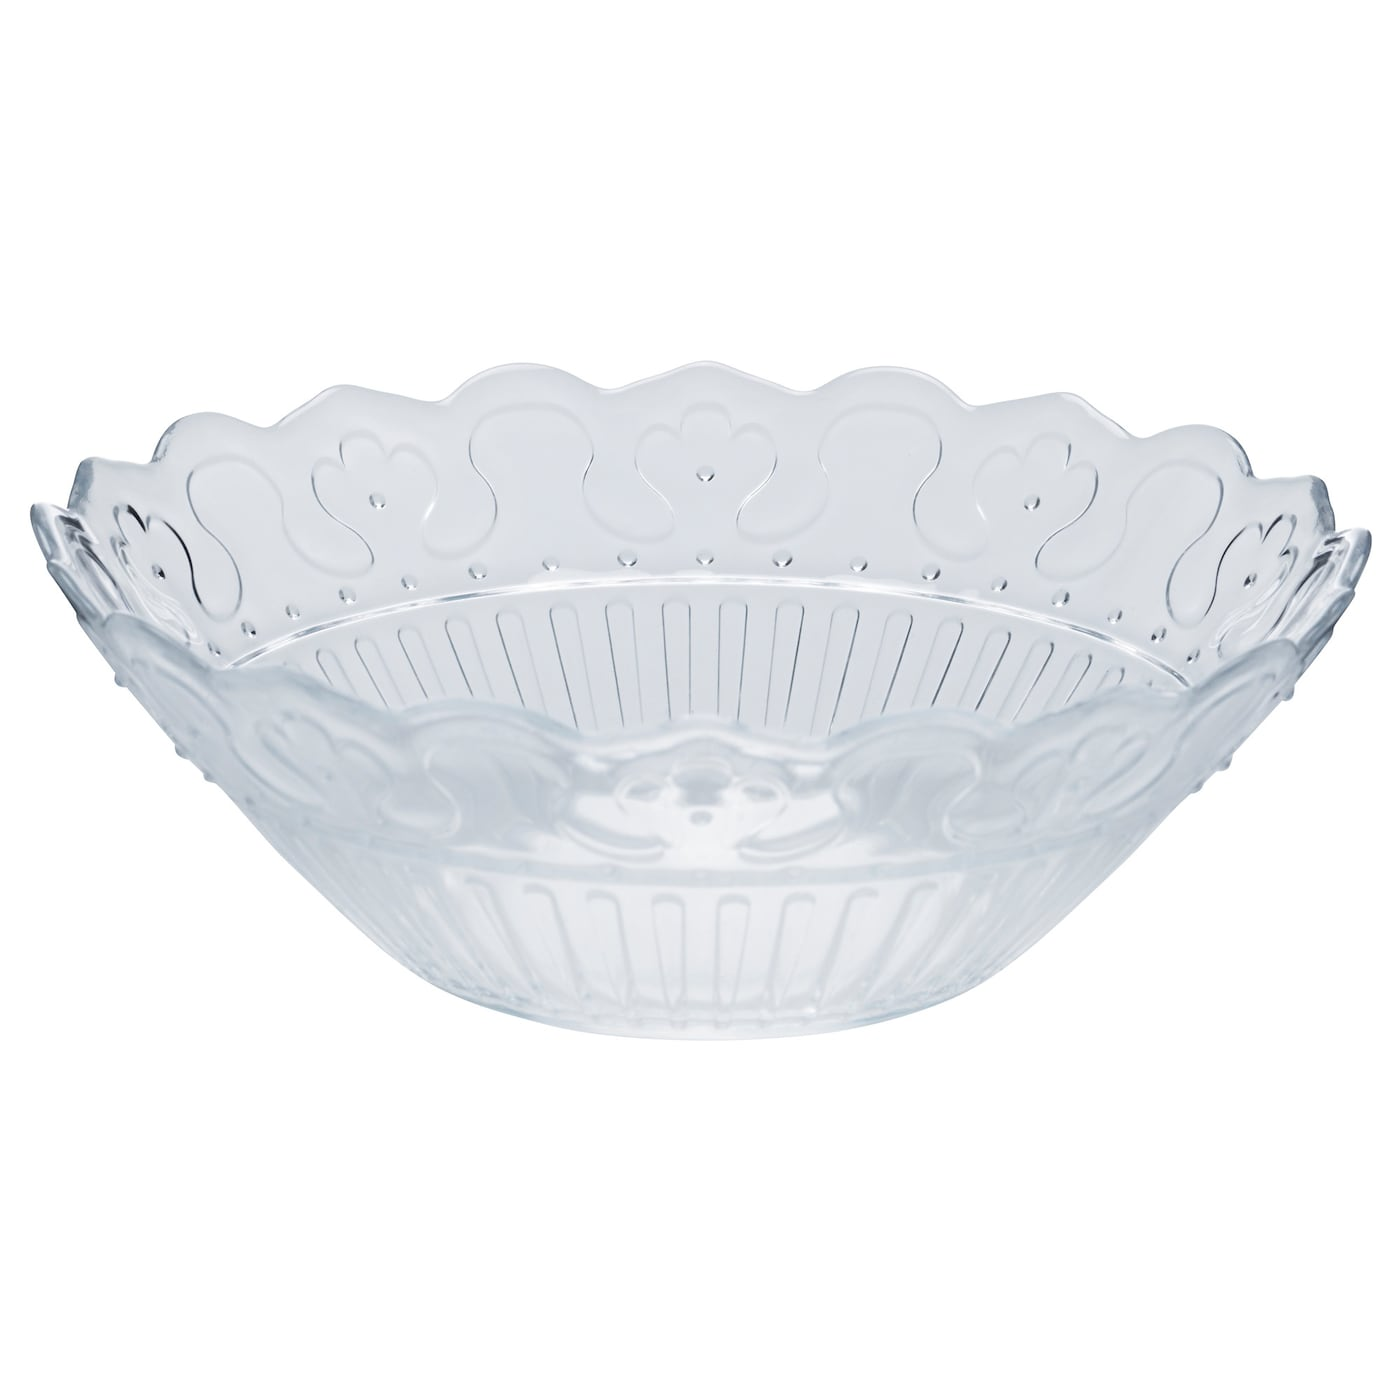 IKEA FRODIG bowl Made of tempered glass, which makes the bowl durable and extra resistant to impact.